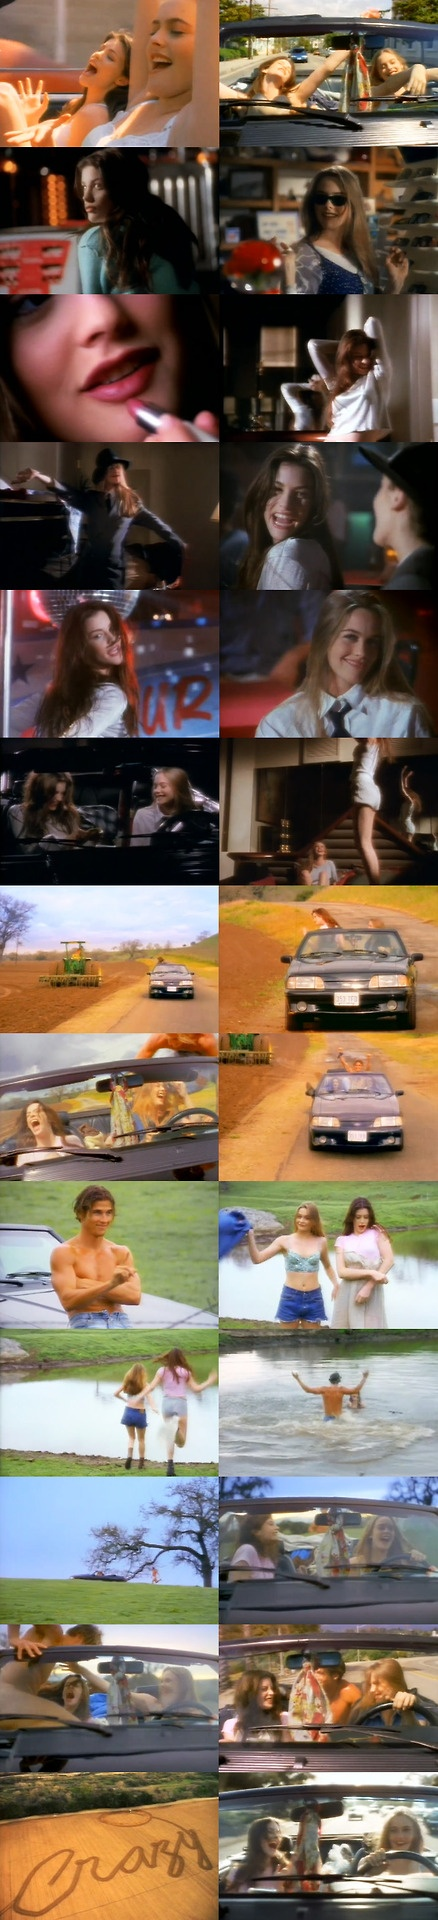 Aerosmith - Crazy | Featuring Liv Tyler and Alicia Silverstone